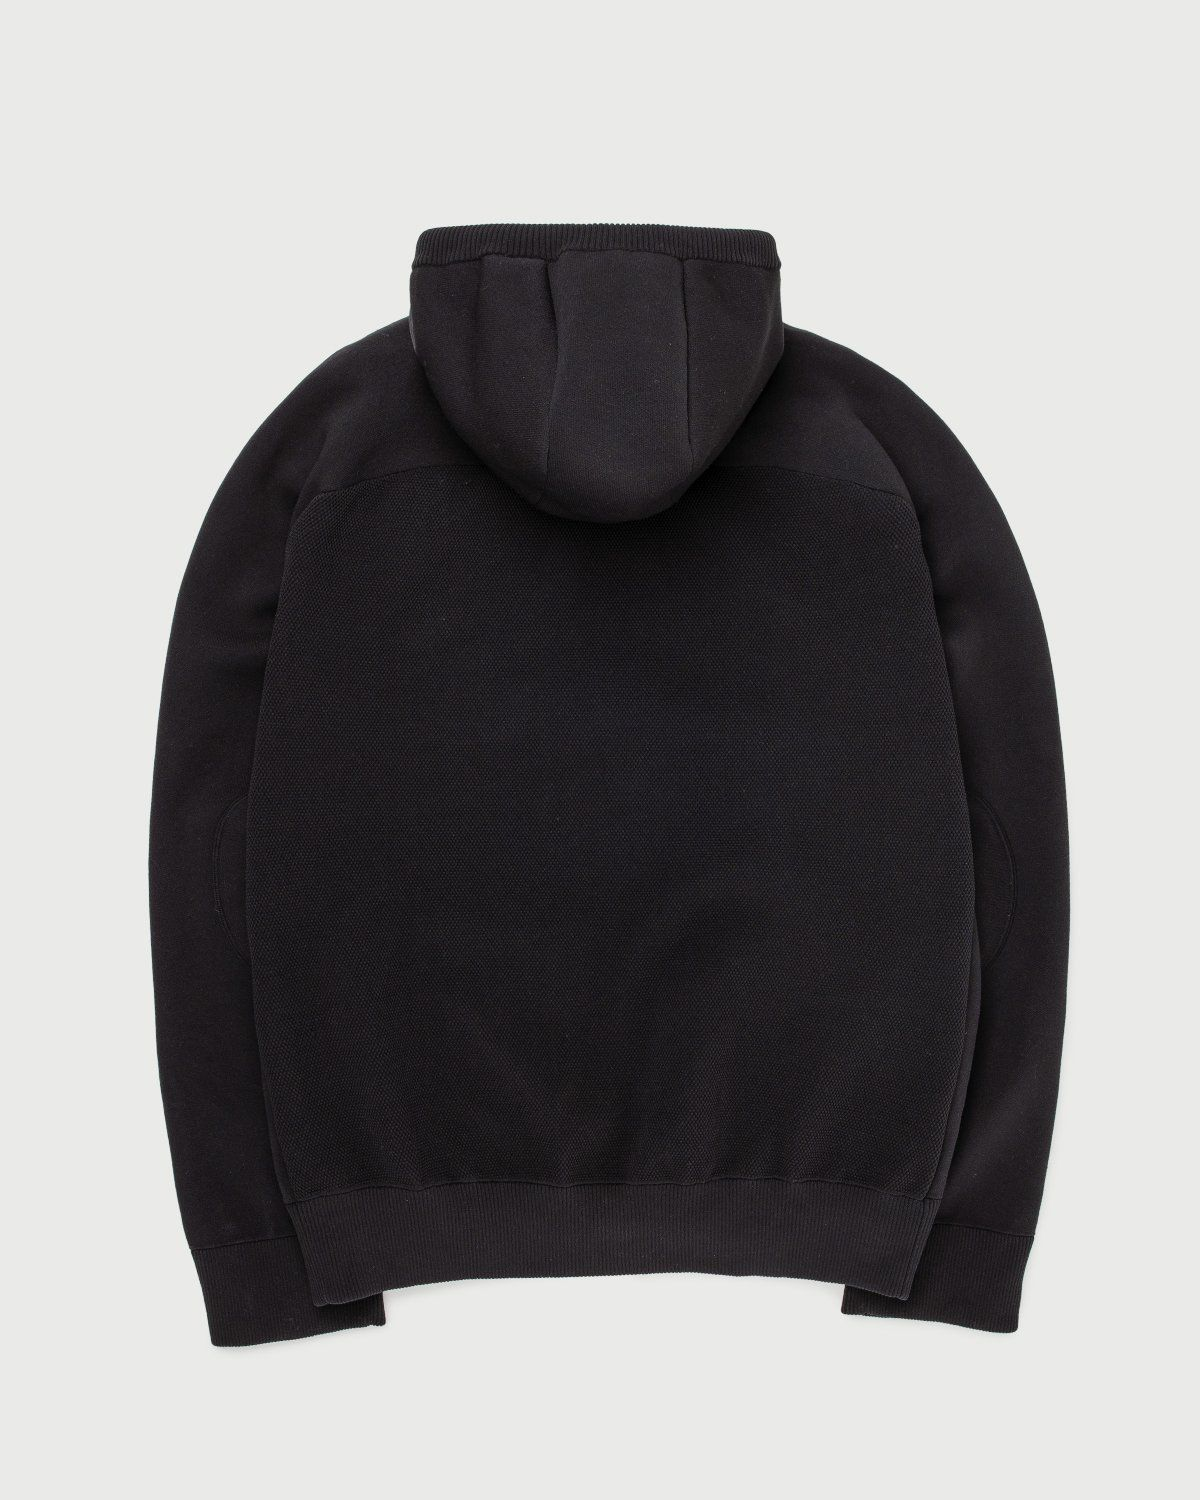 The North Face Black Series - Engineered Knit Hoodie Black - Image 3